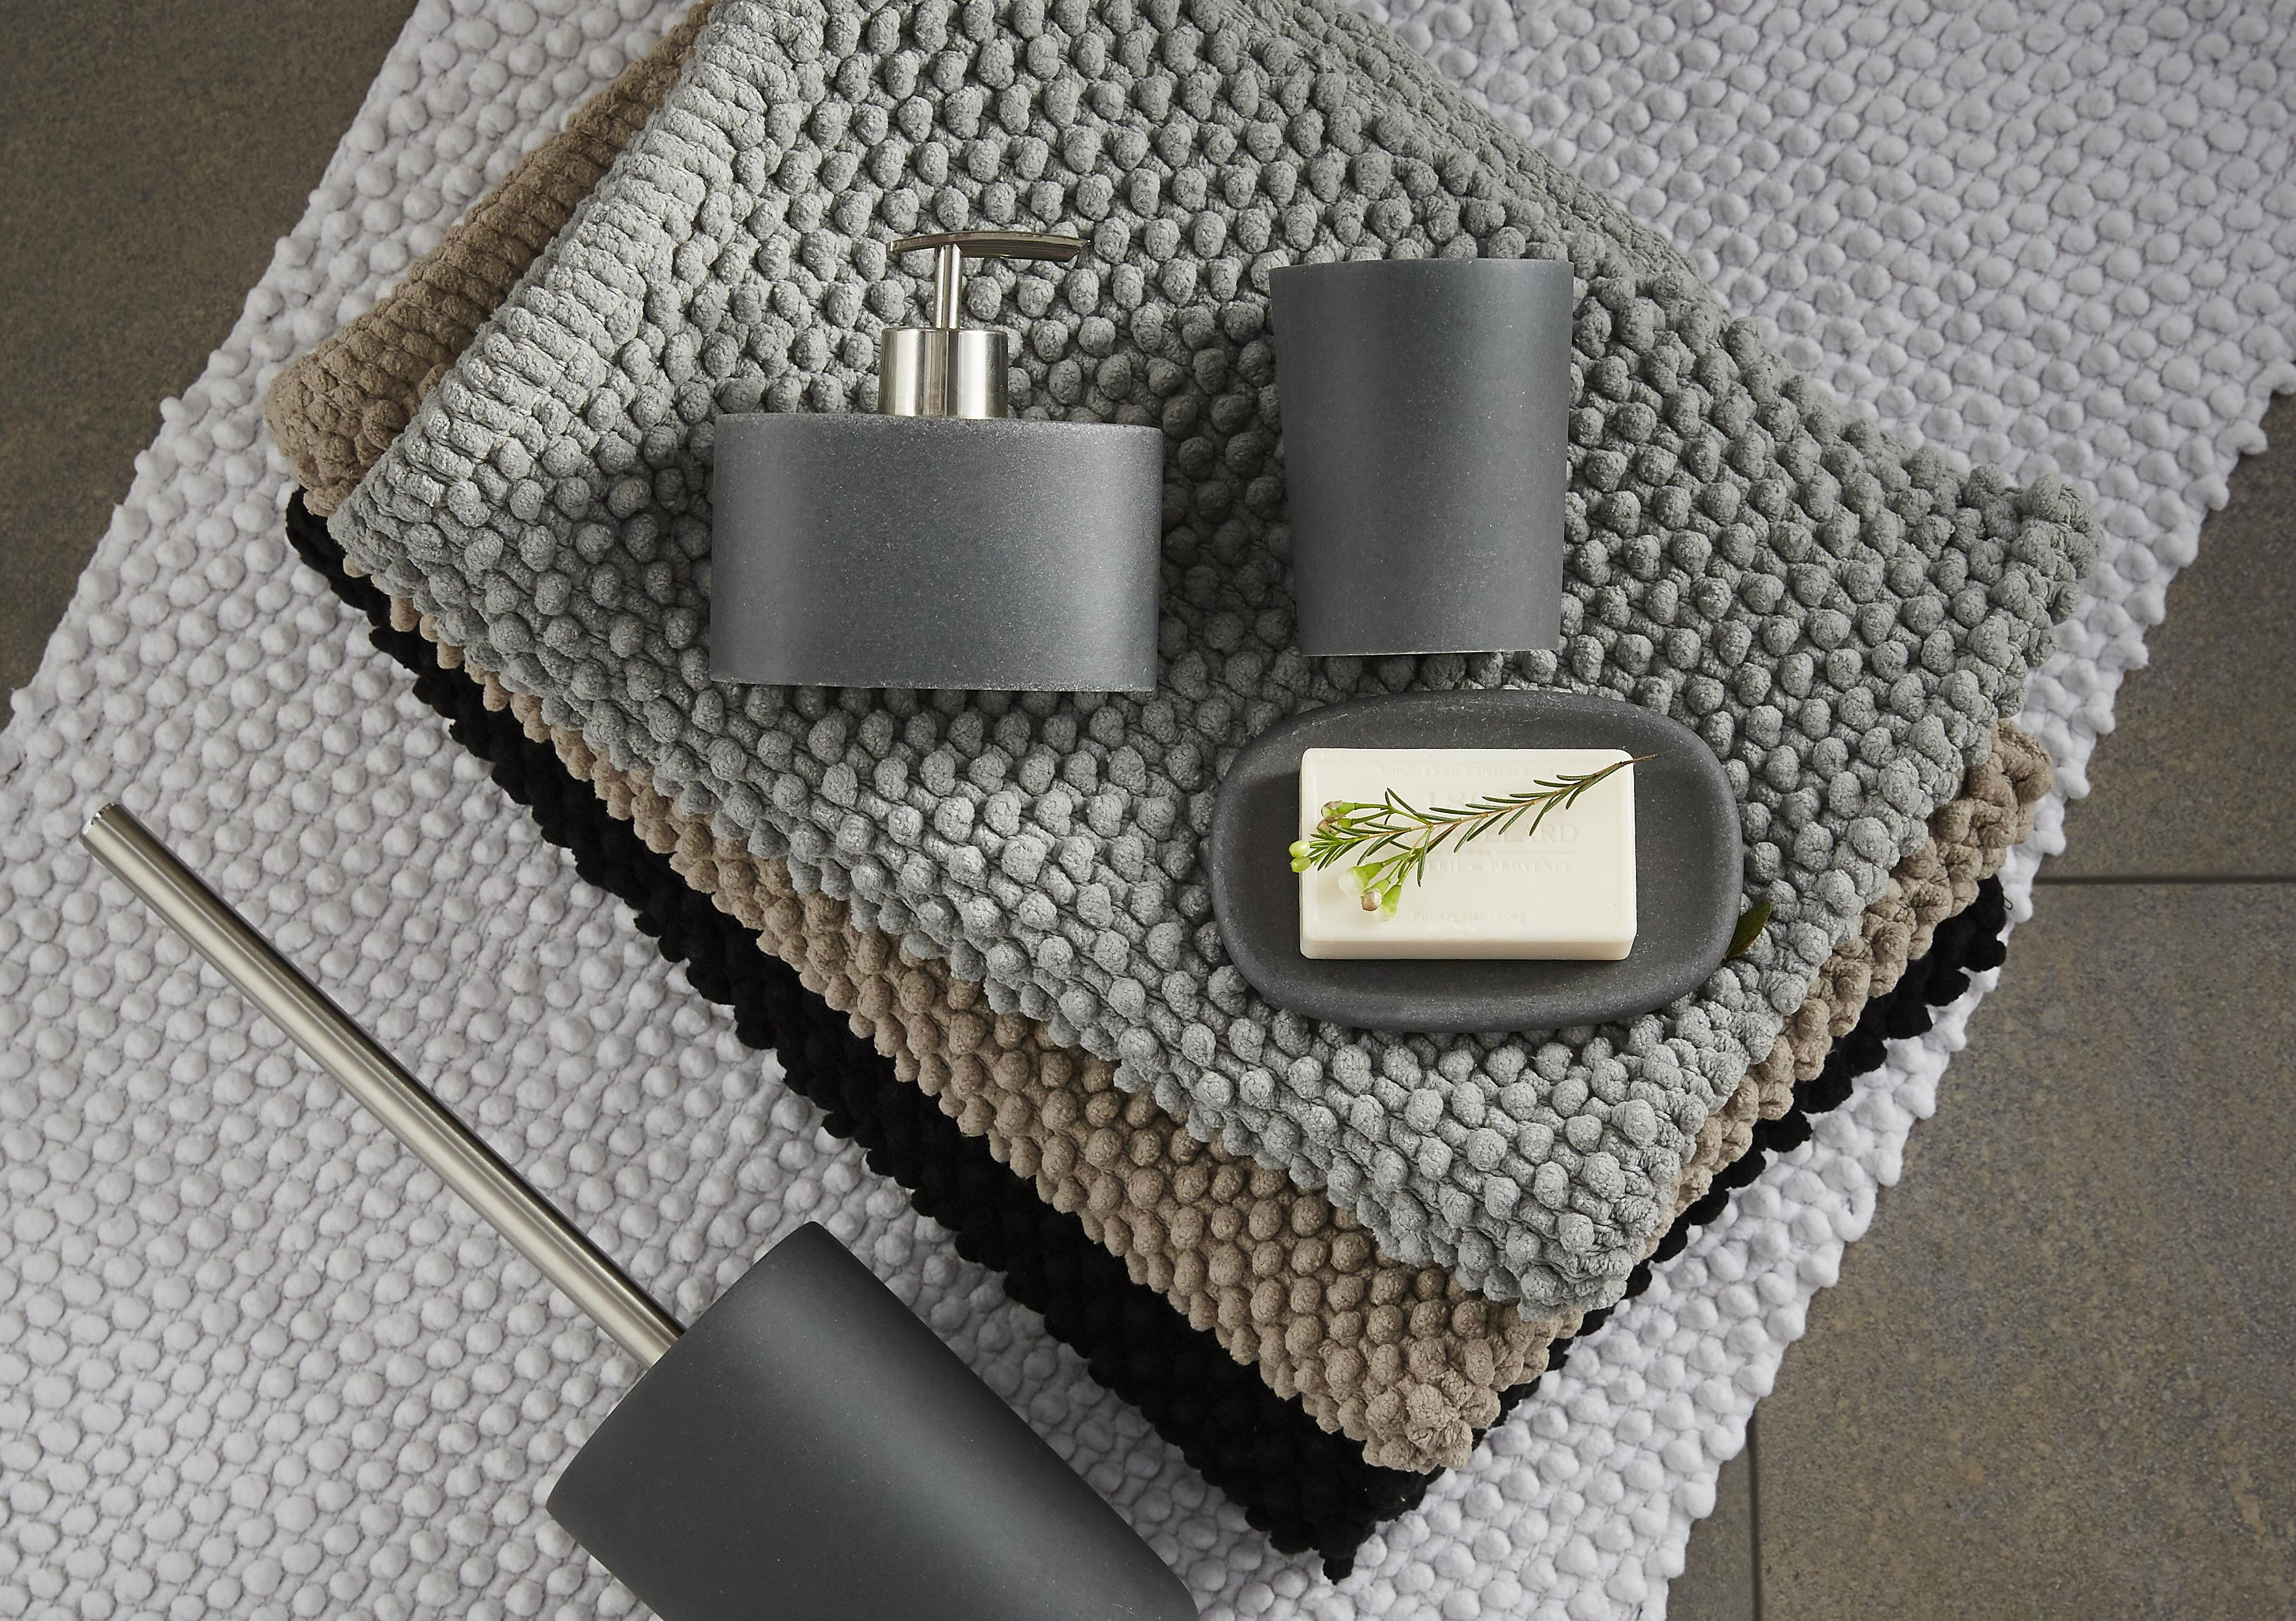 Bathroom Accessories Pictures bathrooms | bathroom fittings & accessories | diy at b&q